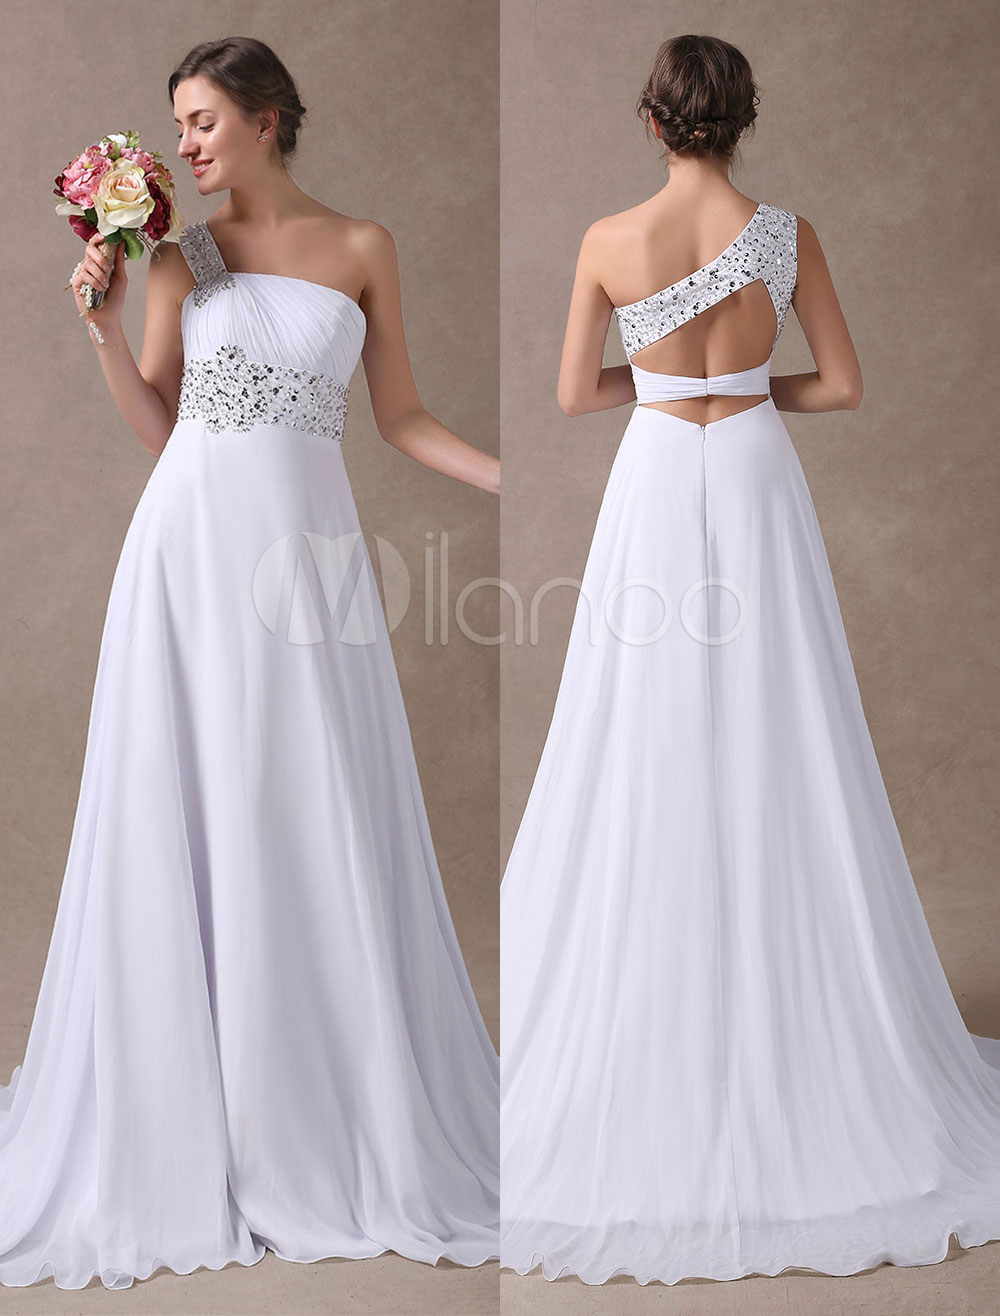 Beautifull White Summer Wedding Dresses